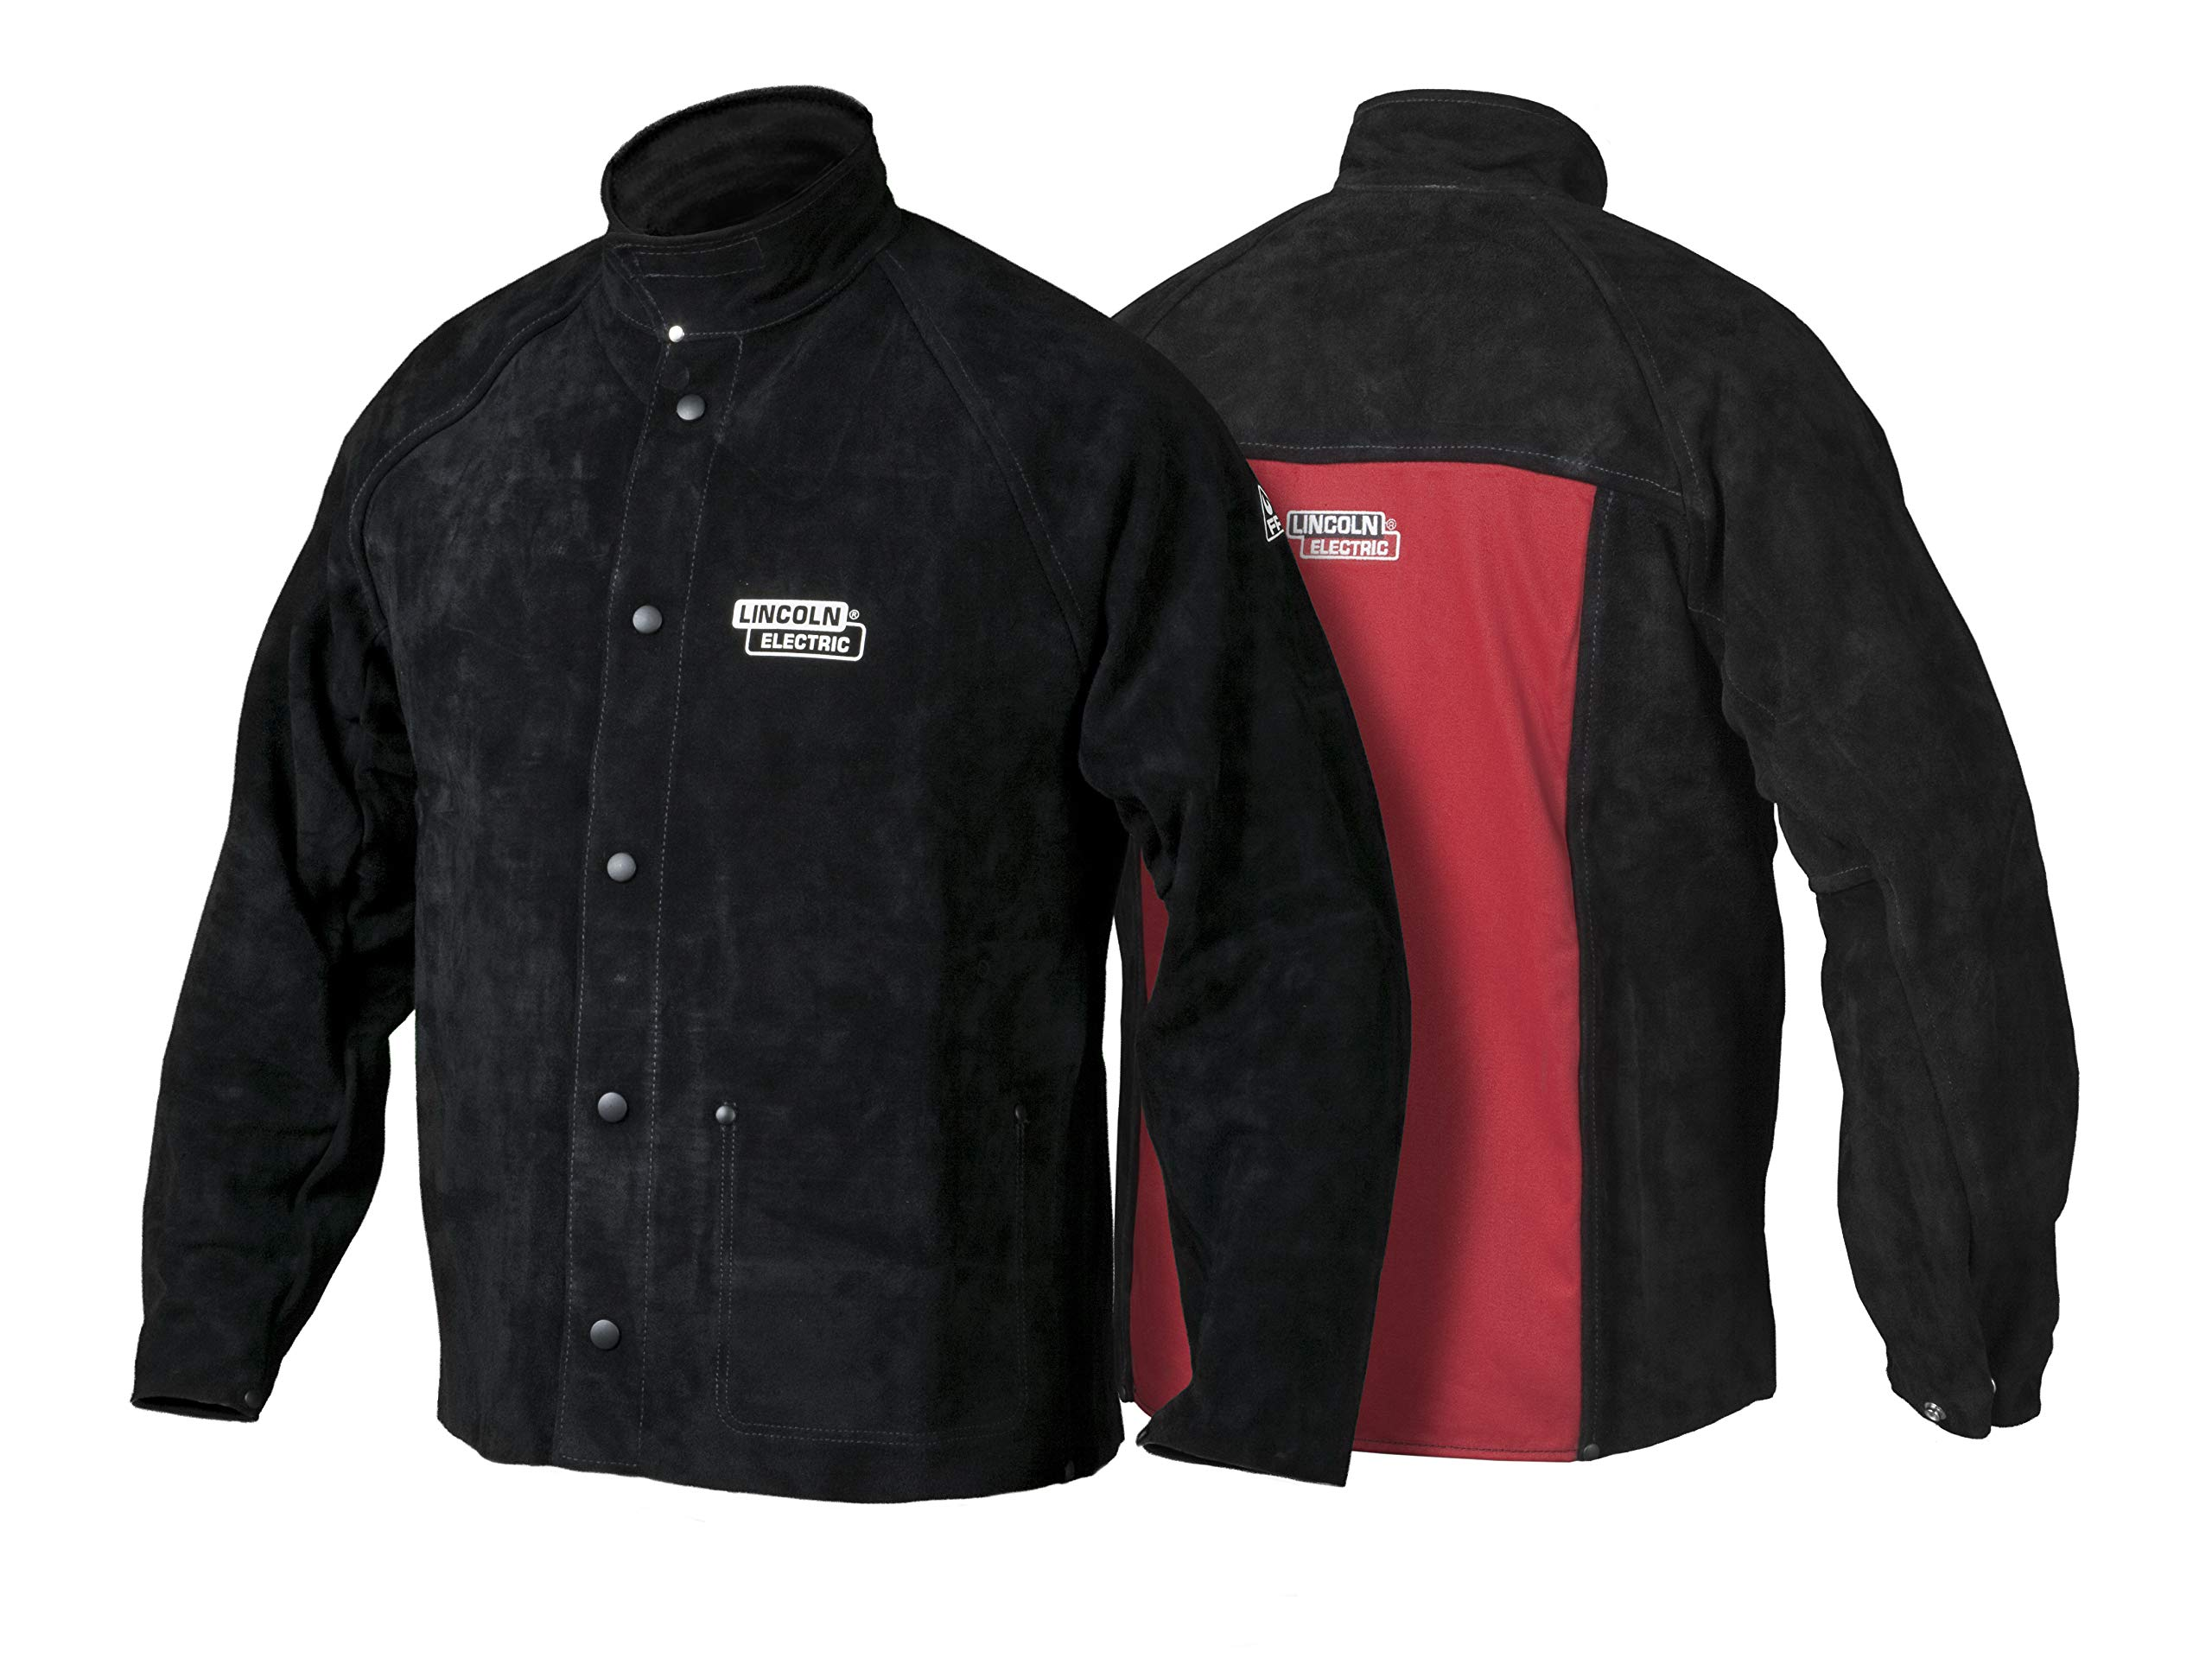 Lincoln Electric Heavy Duty Leather Welding Jacket | Ideal for High Amperage or Out of Position Welding | Medium | K2989-M by Lincoln Electric